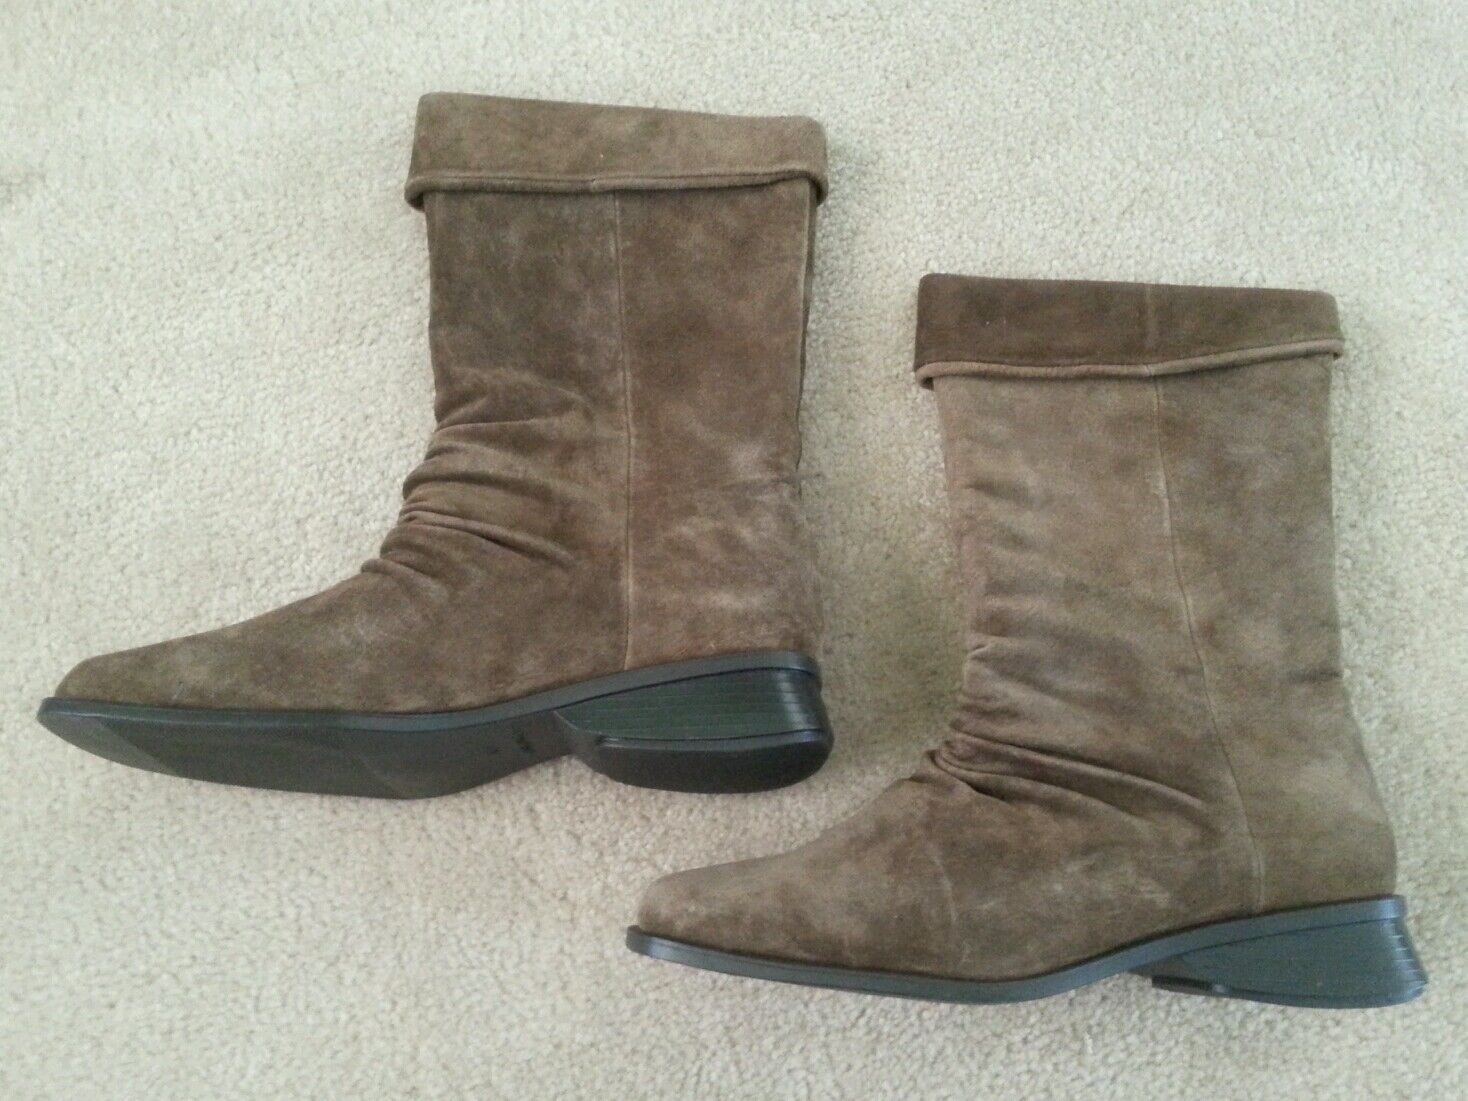 Markon-Suede Leather Mid-Calf Boots Free Shipping